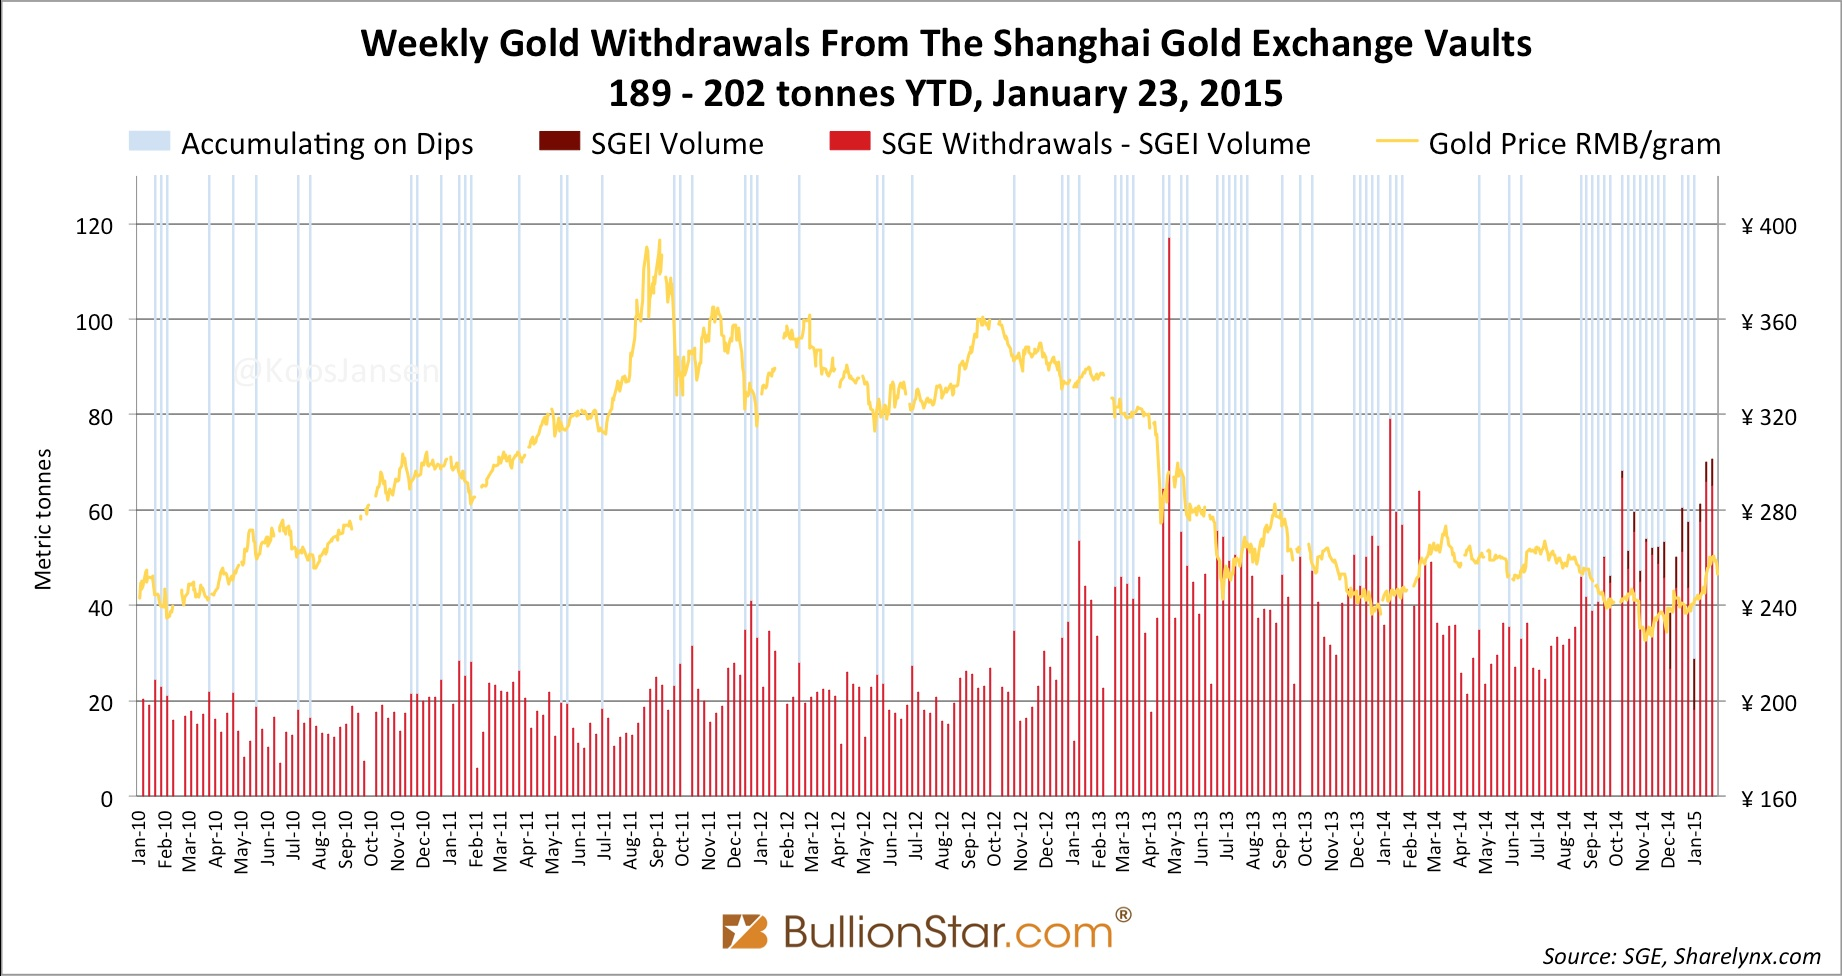 weekly gold withdrawals from Shanghai gold exchange